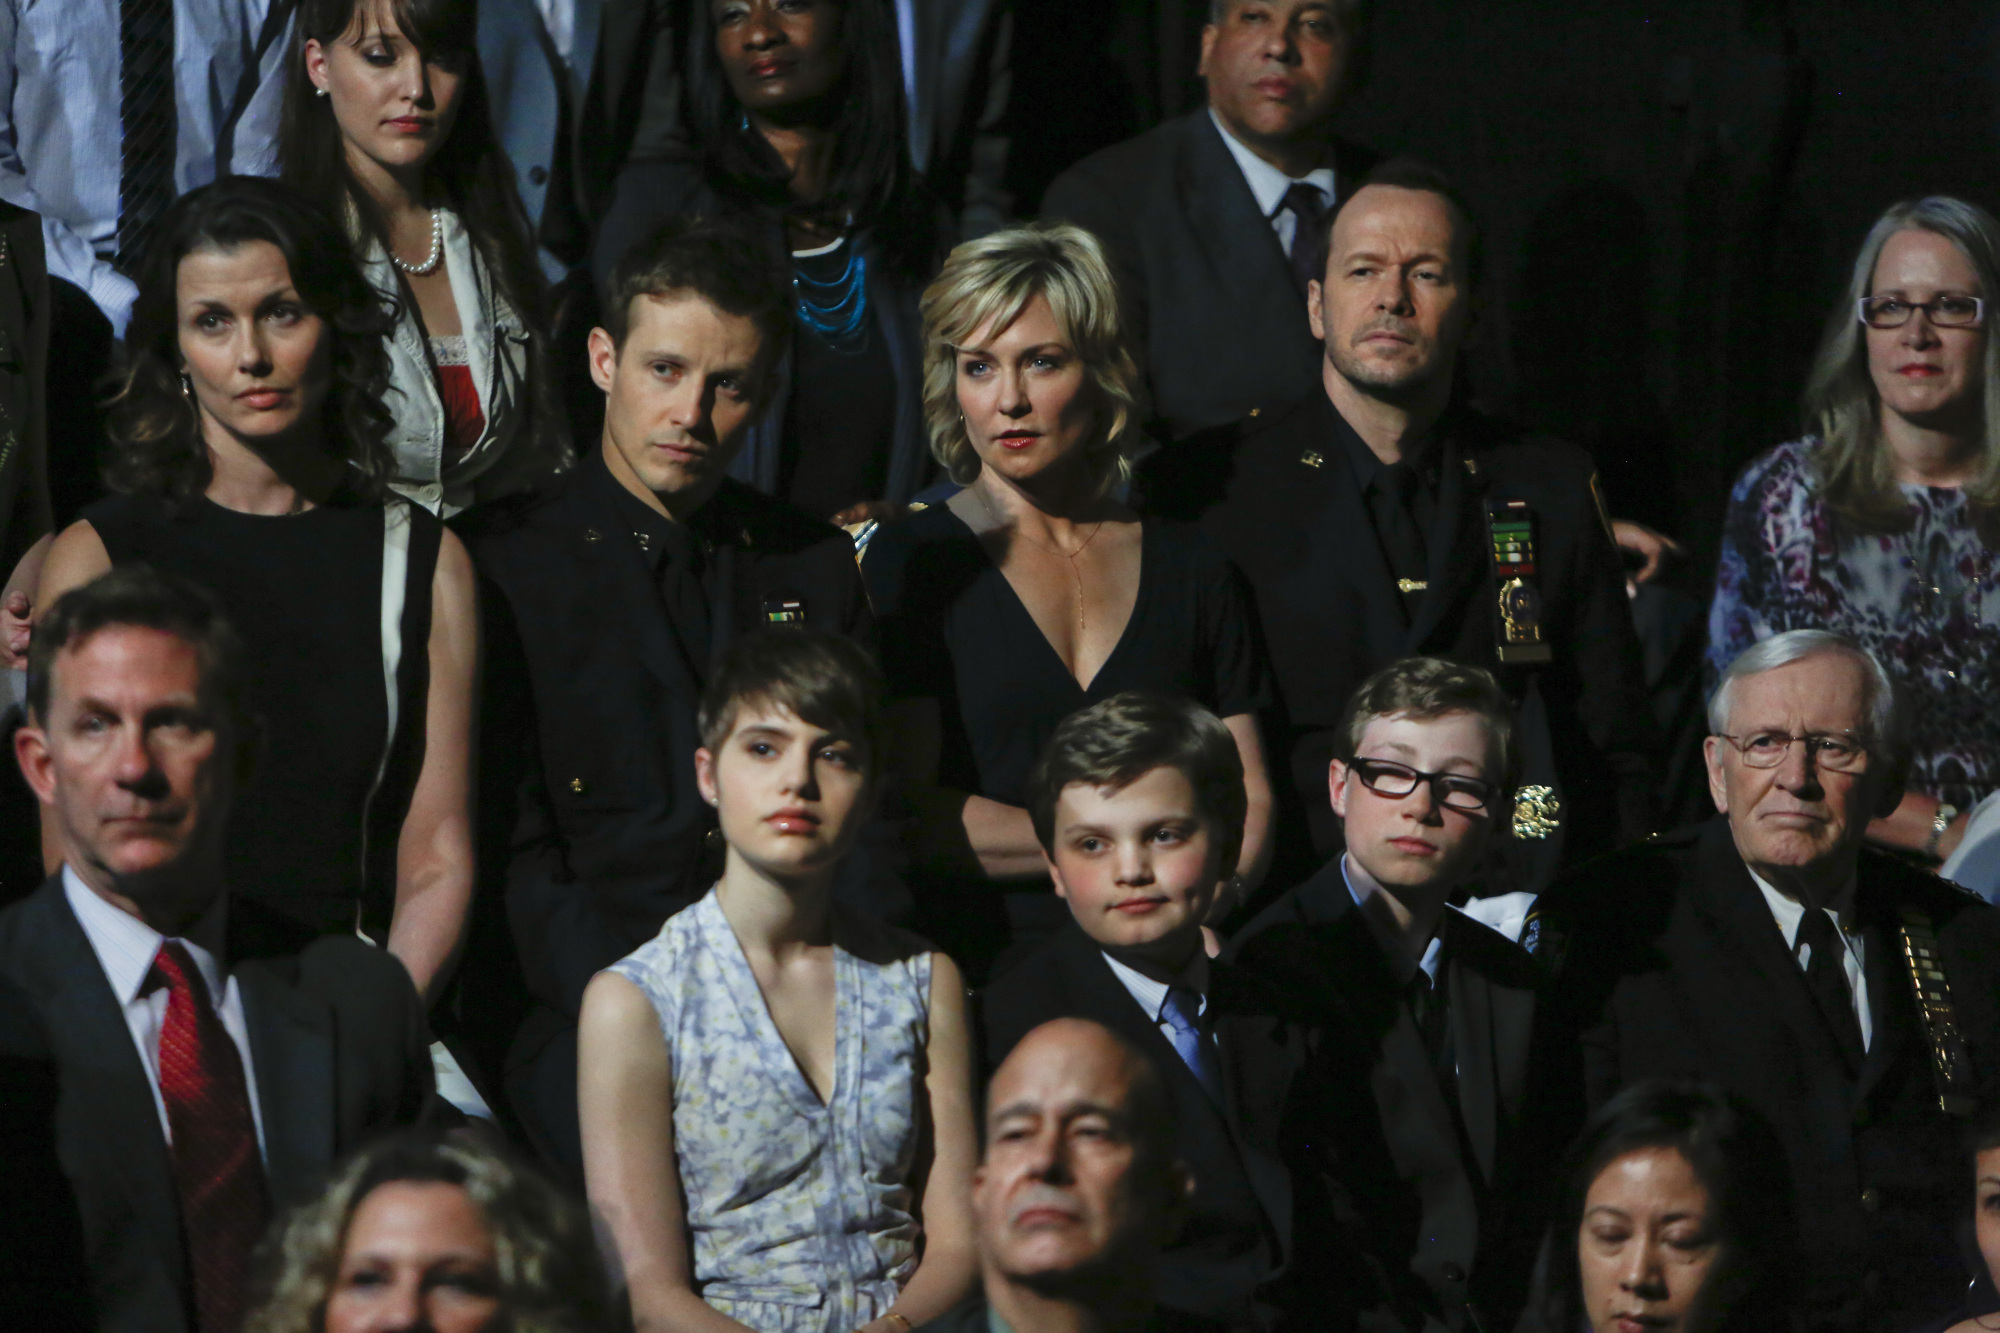 Notice how similar their listening faces are -- that's family.